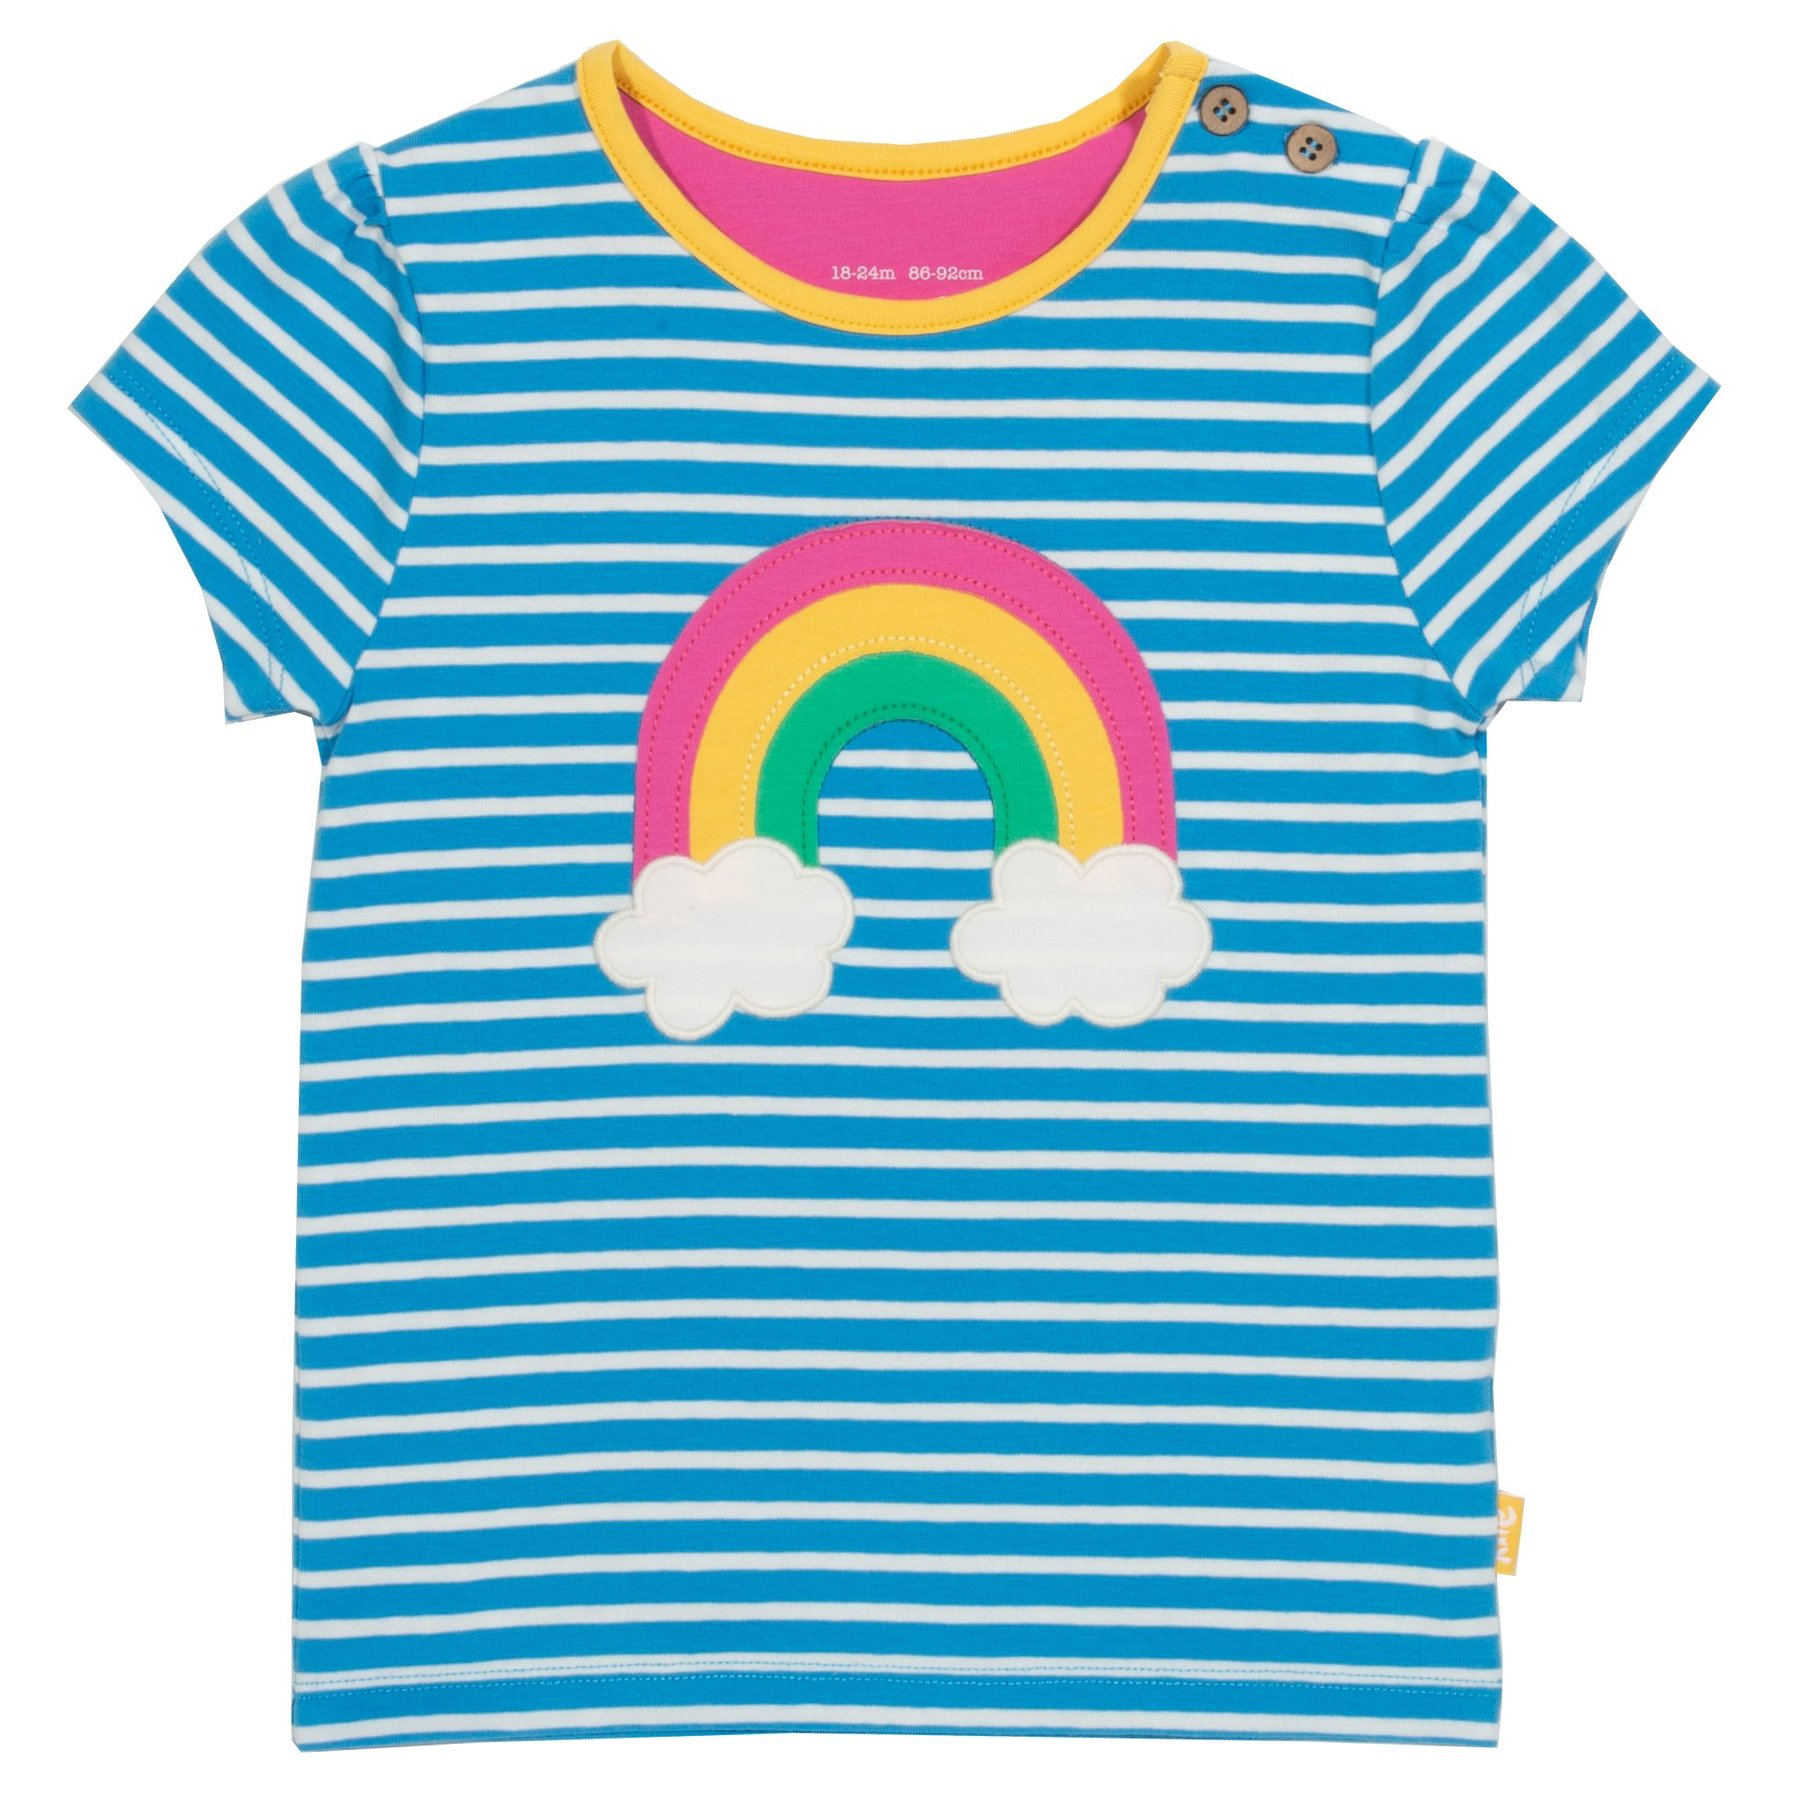 NOW £14.40 Kite Rainbow T-Shirt